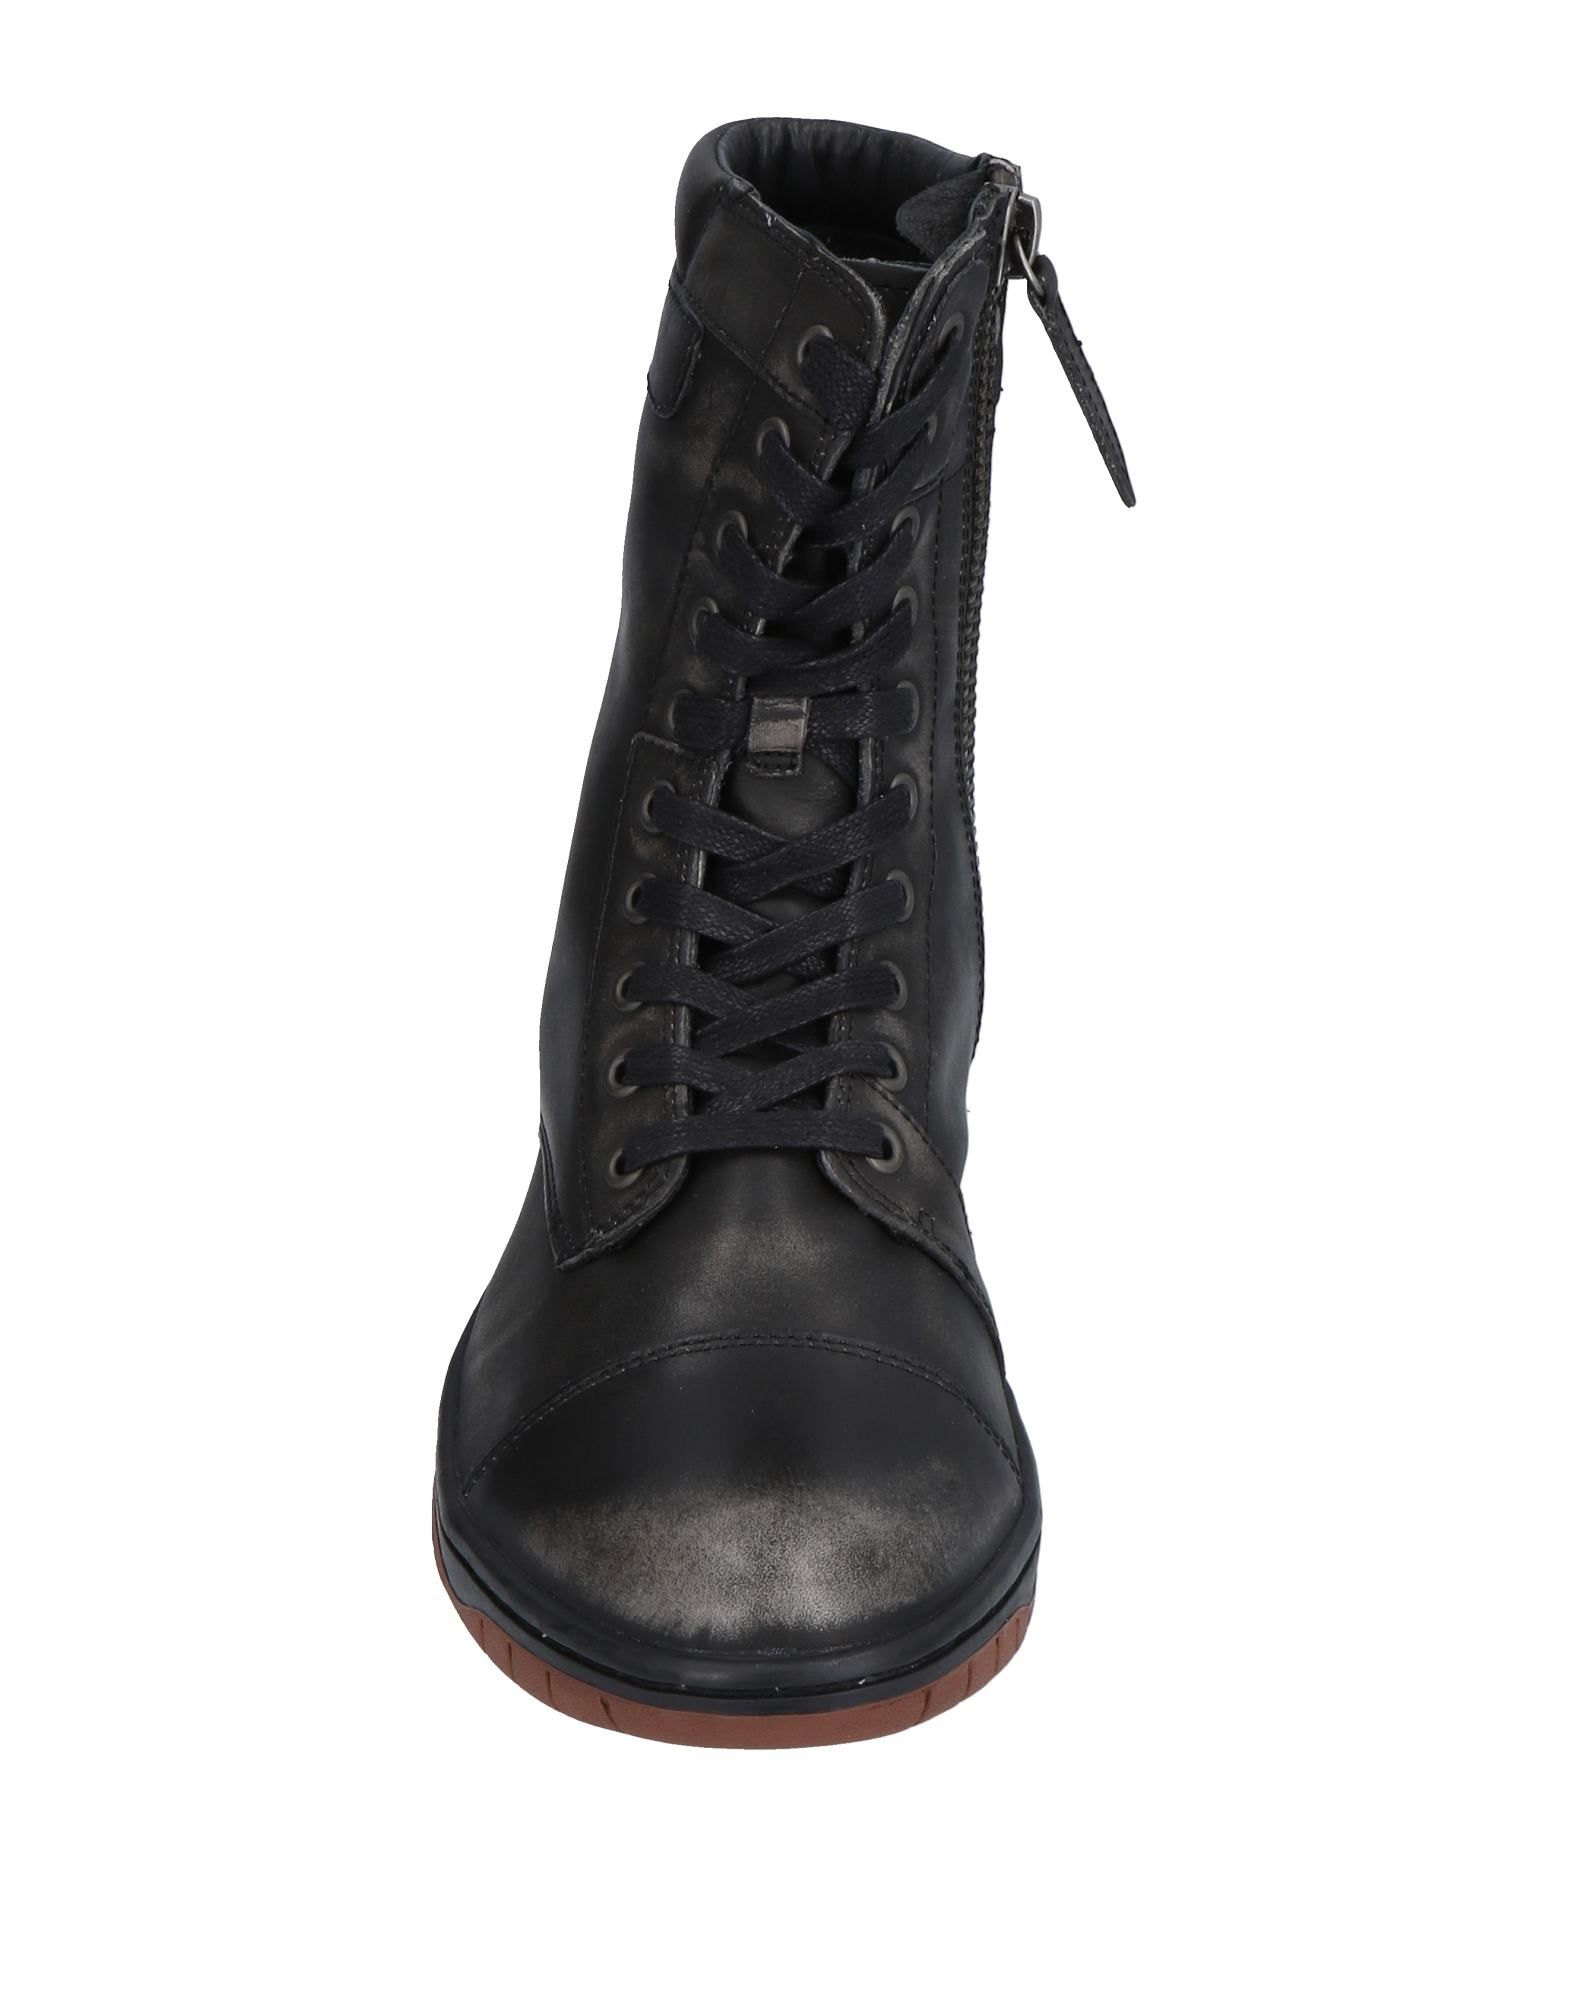 Diesel Sneakers - Men Diesel Sneakers online on on on  Canada - 11491354JH 71c470